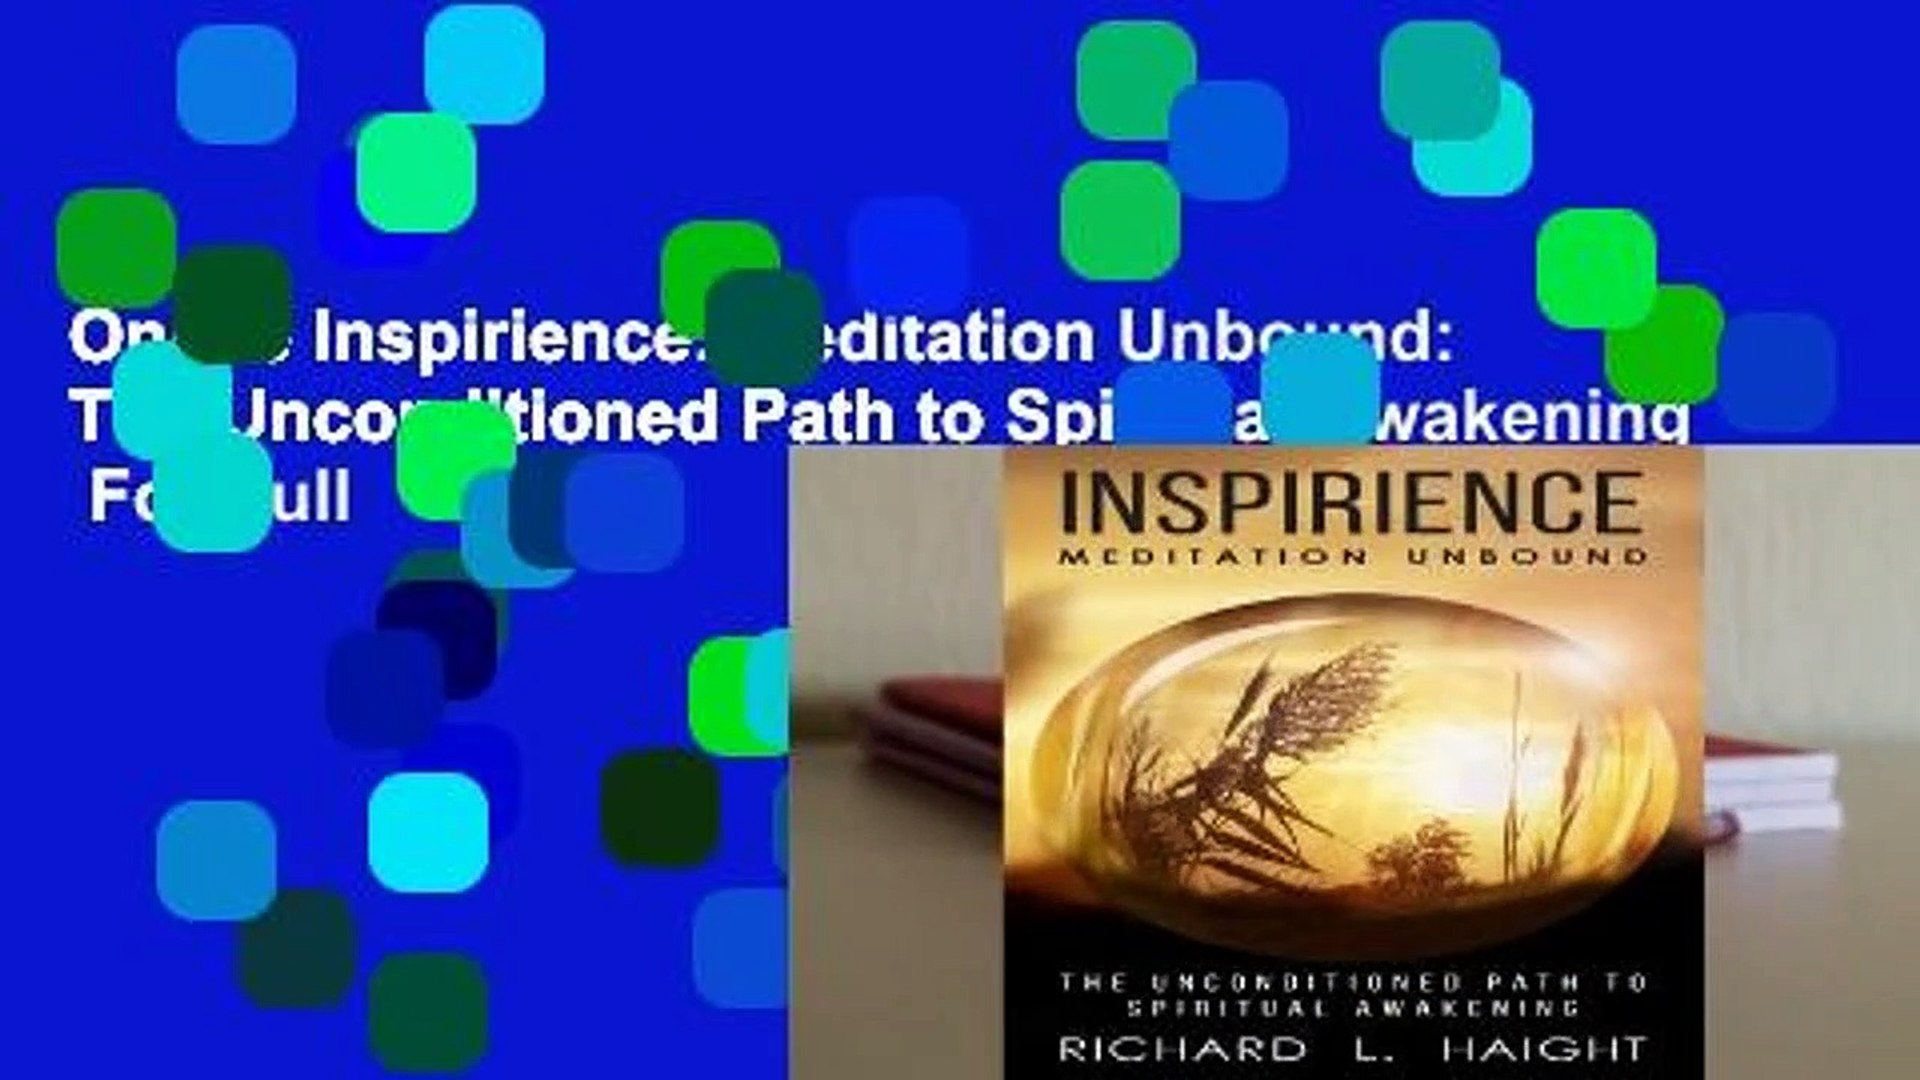 Online Inspirience: Meditation Unbound: The Unconditioned Path to Spiritual Awakening  For Full